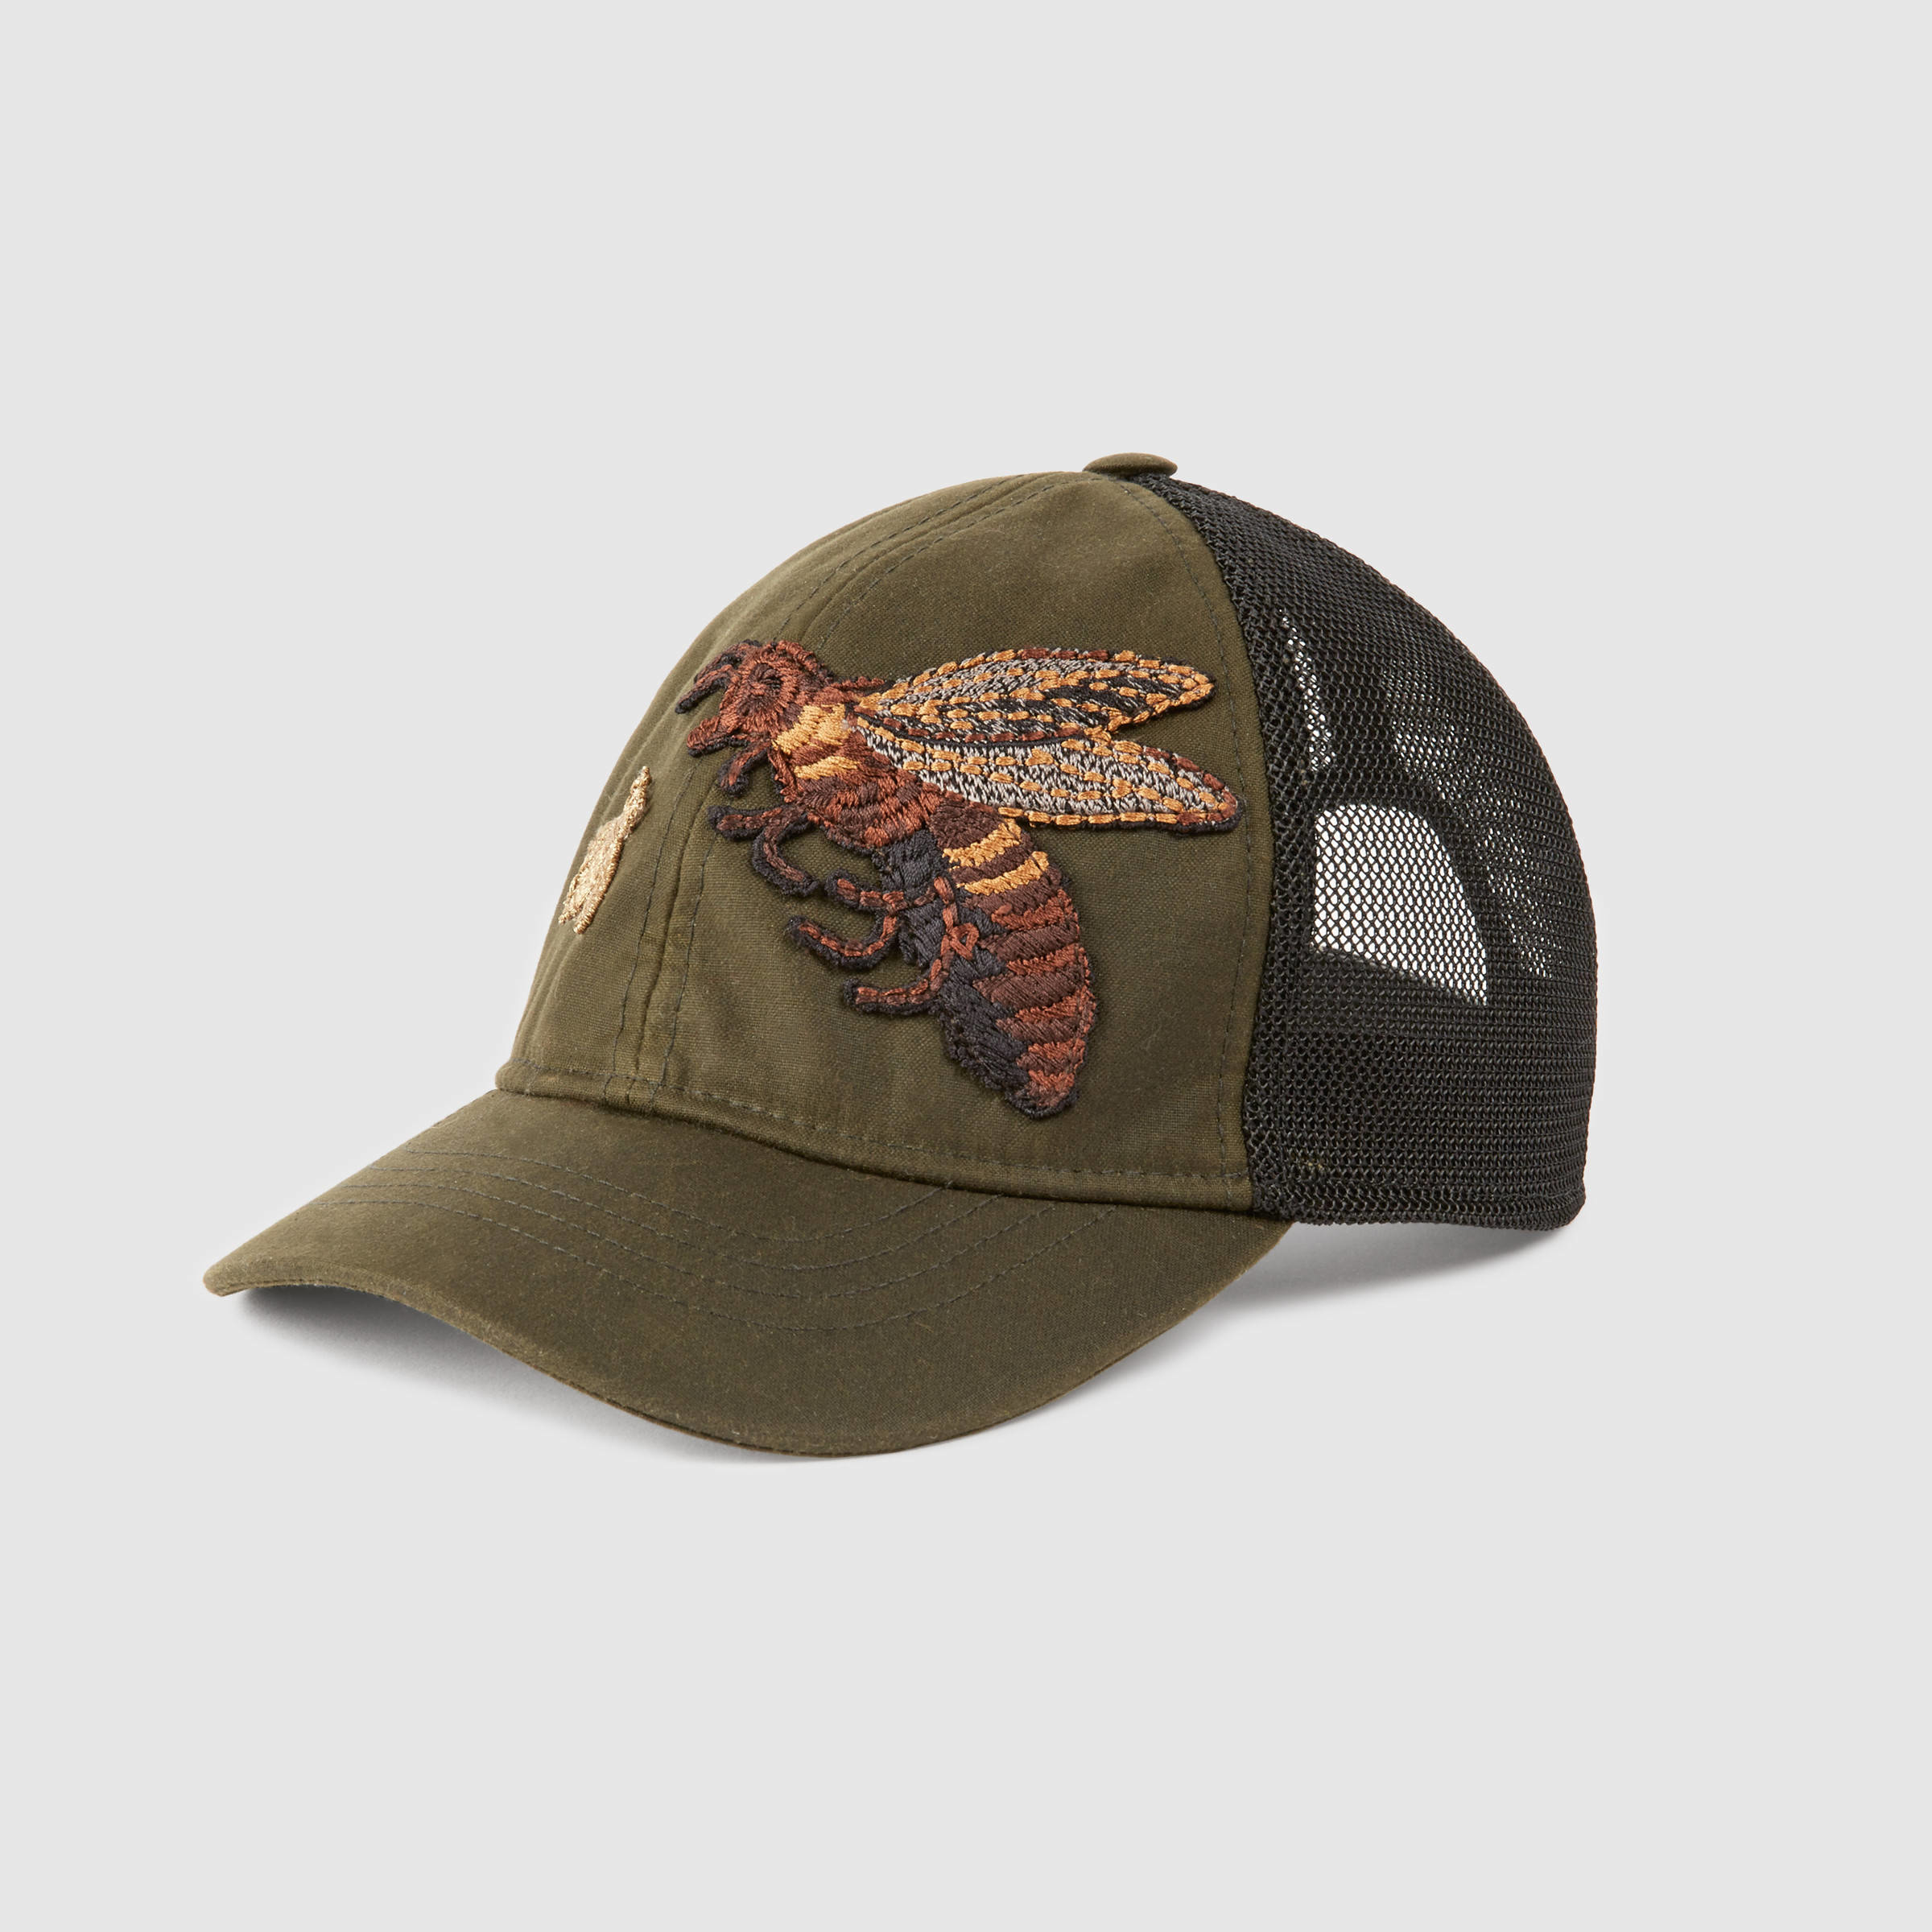 Gucci Hats For Men: Gucci Canvas Hat With Bee Embroidery In Black For Men